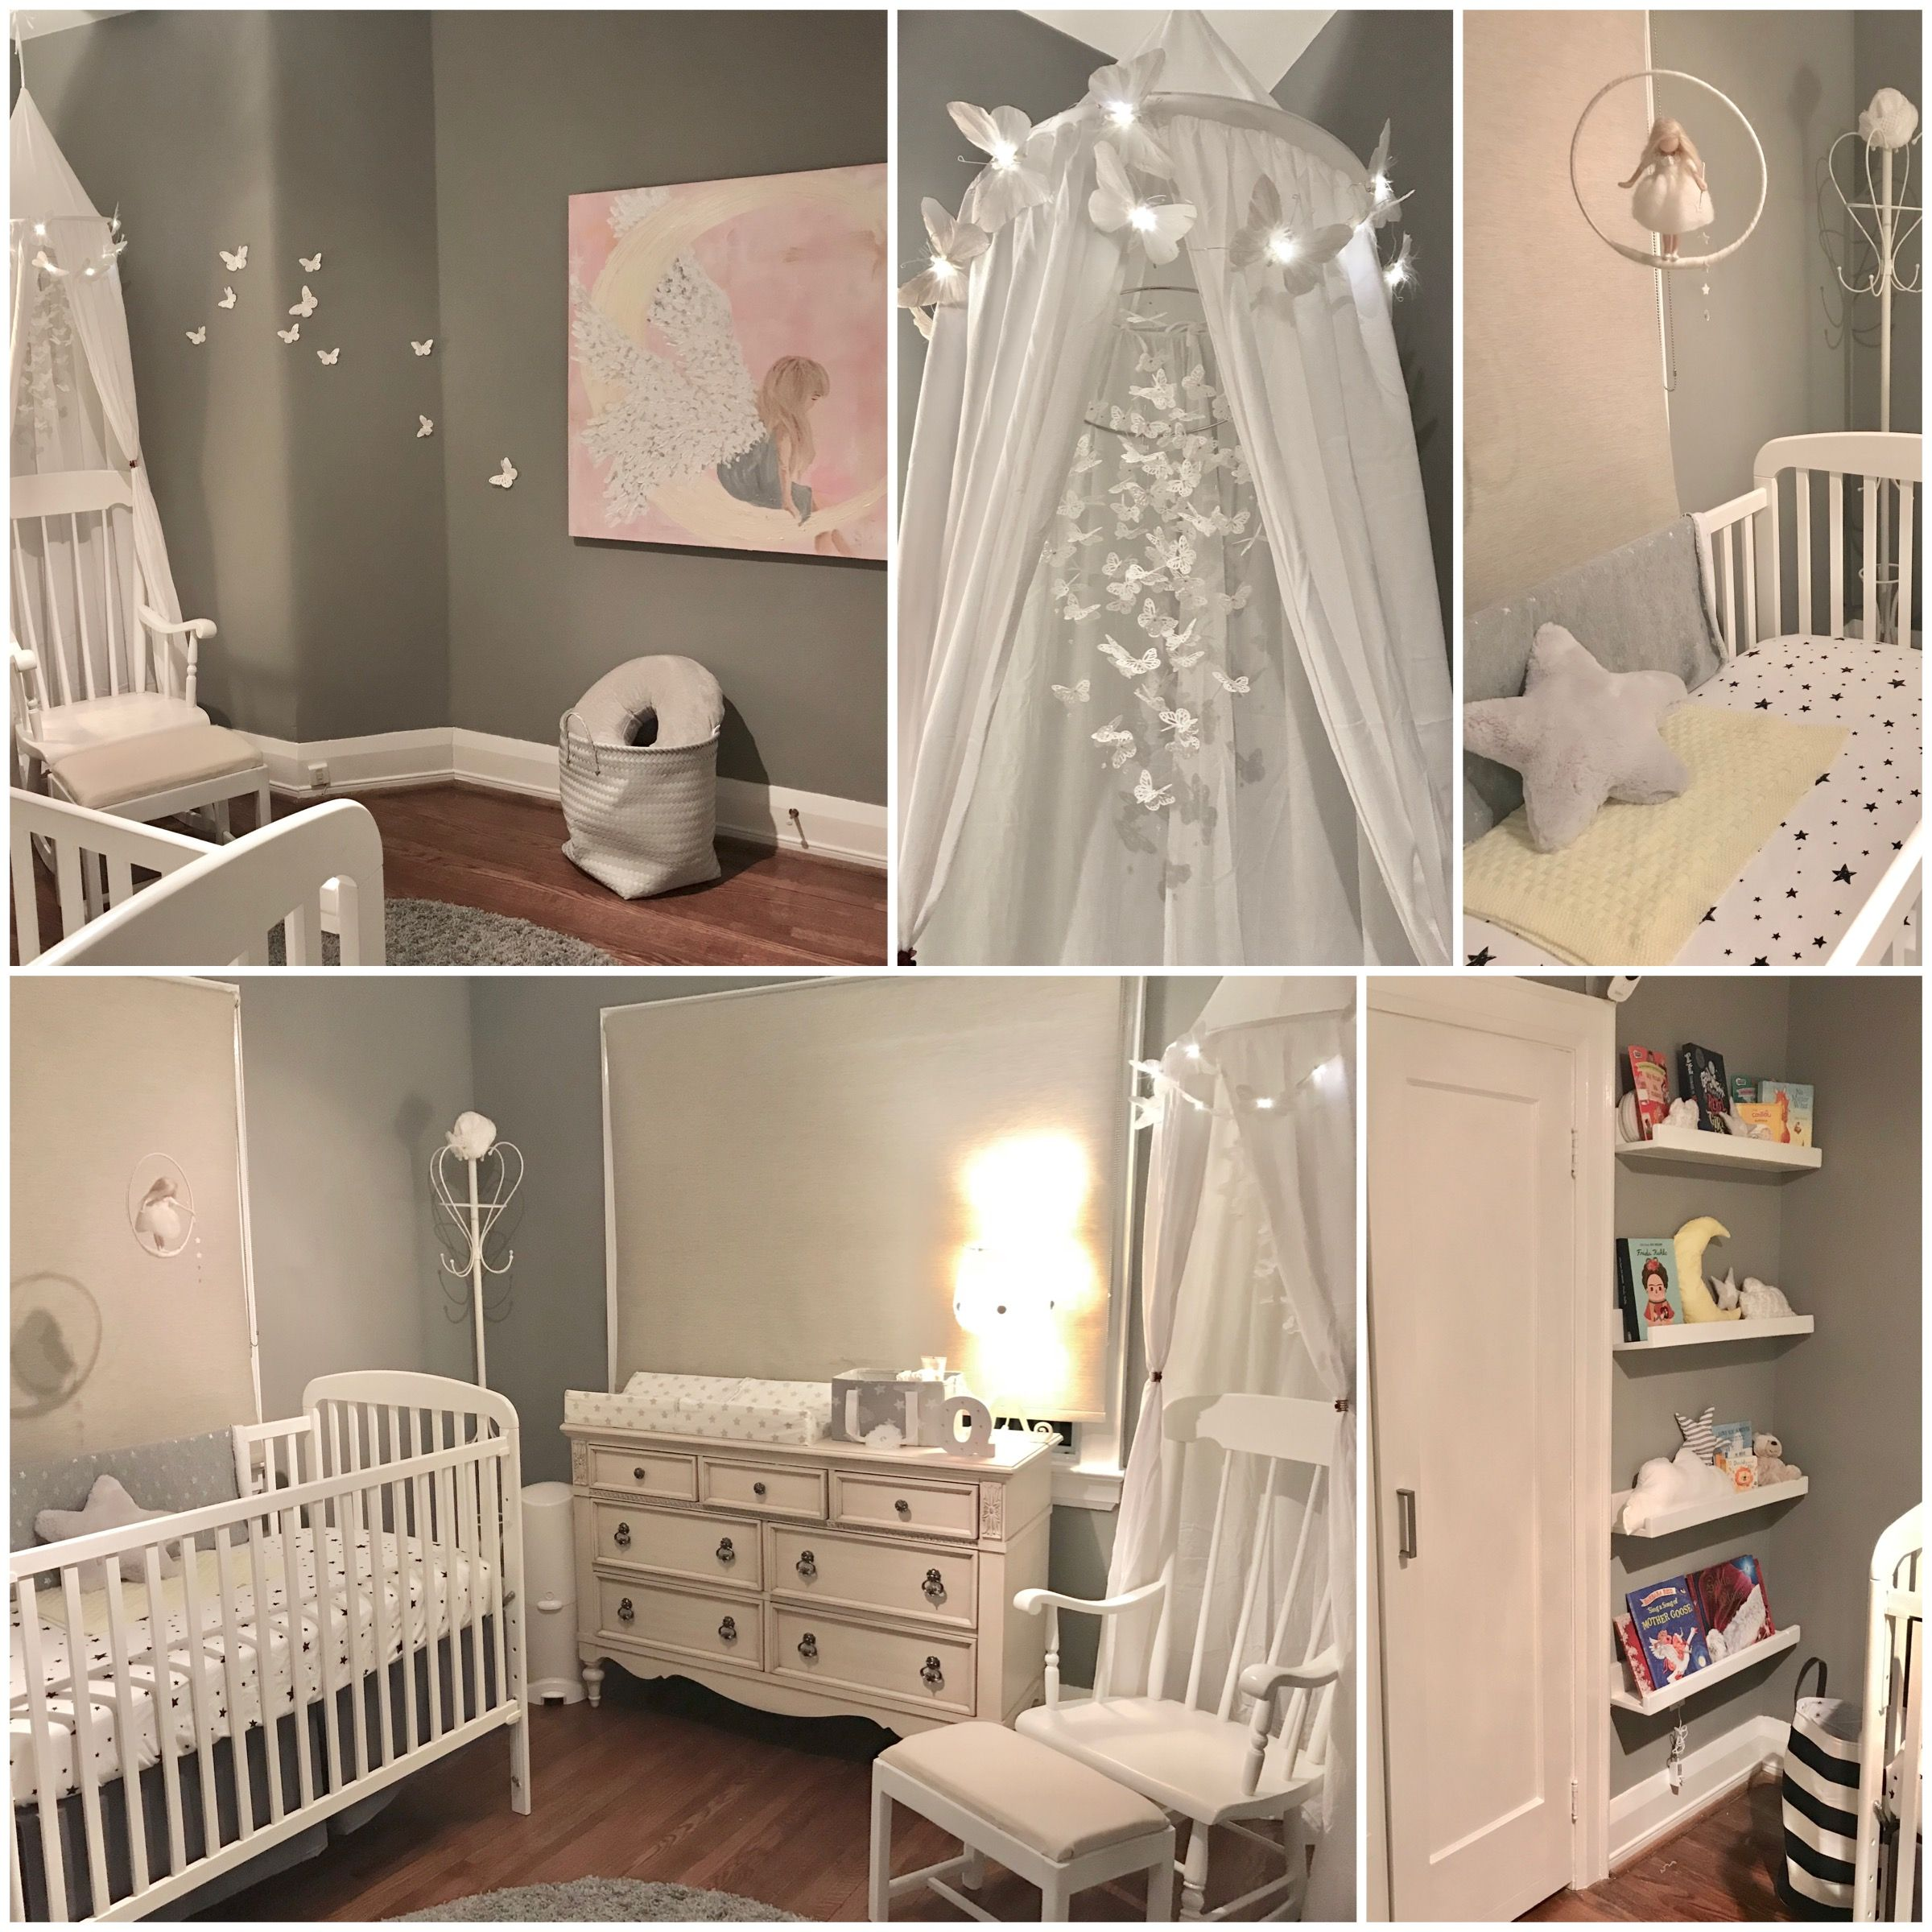 Nursery Inspiration By Kimberly Ap Neutral Grey White Erfly Stars Moon Clouds Angel